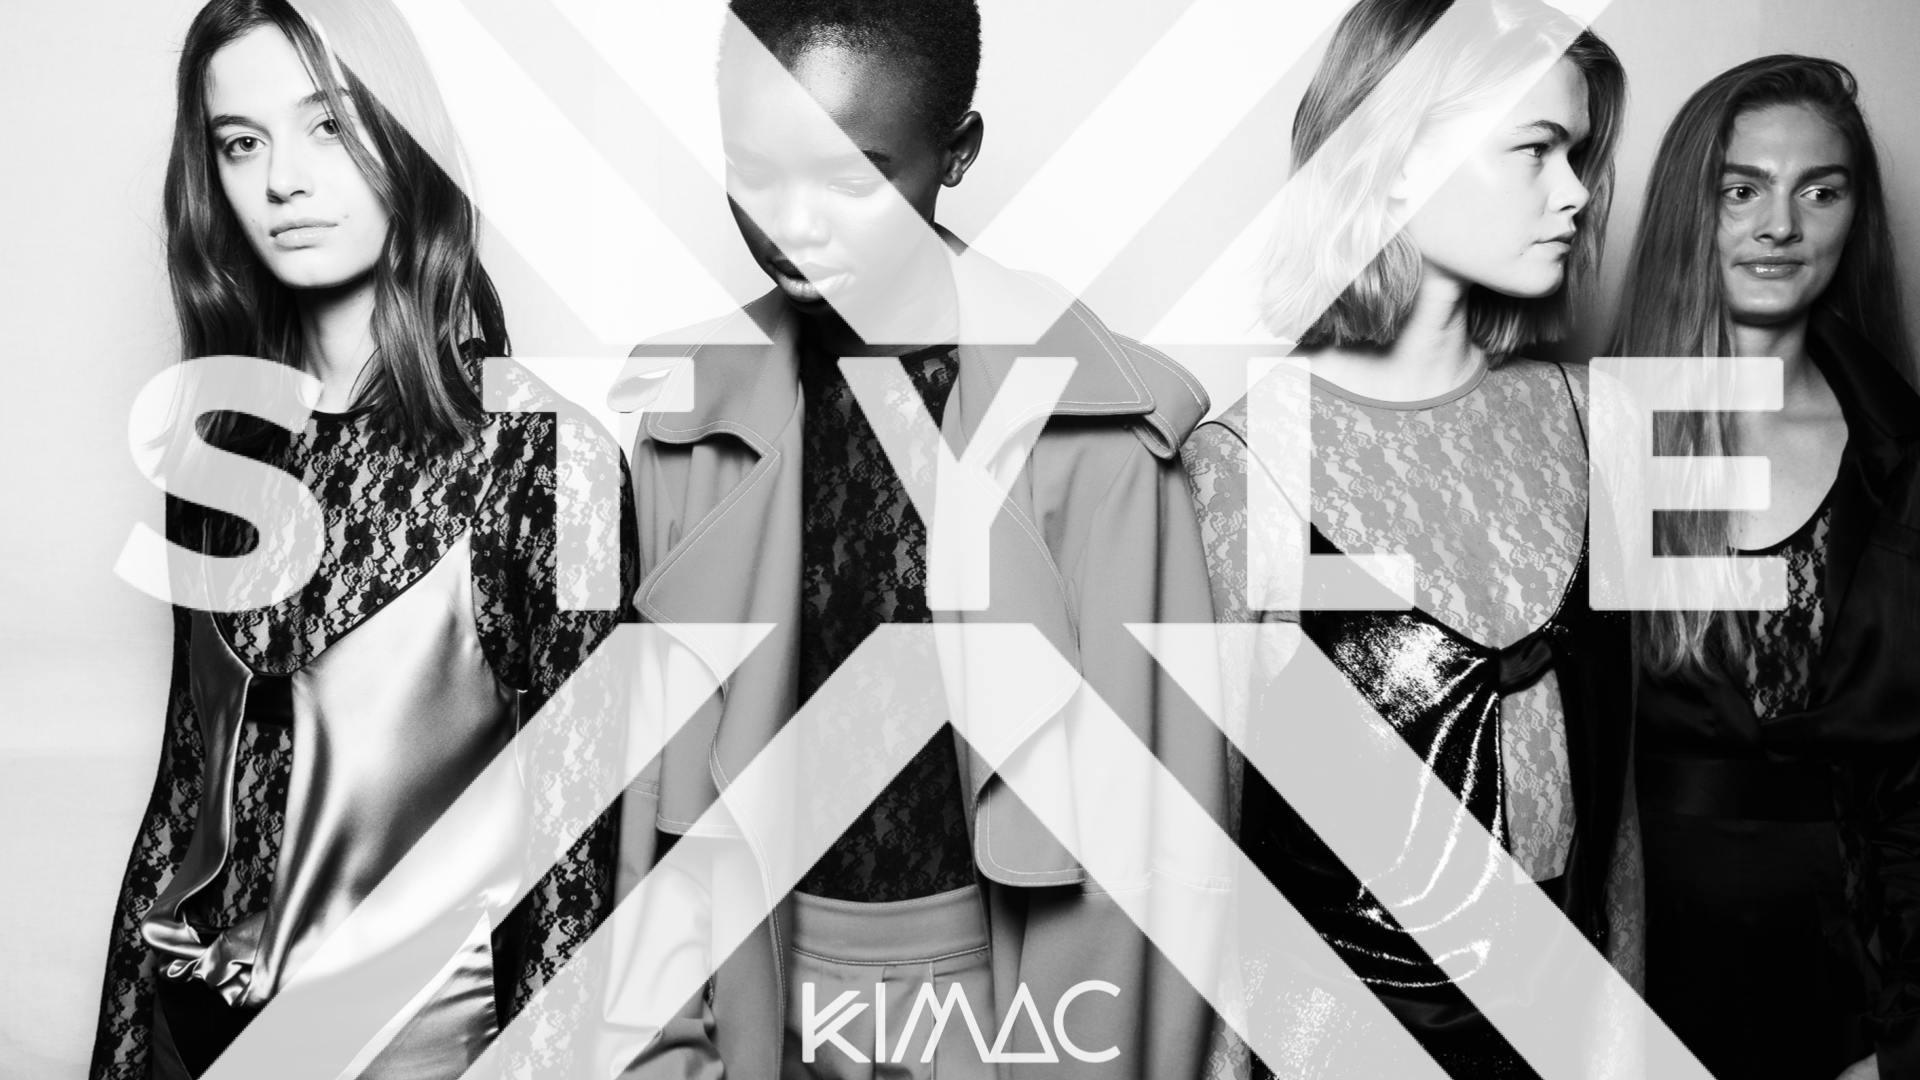 STYLE X / KIMAC Group New York Fashion Week SS20 Media Coverage